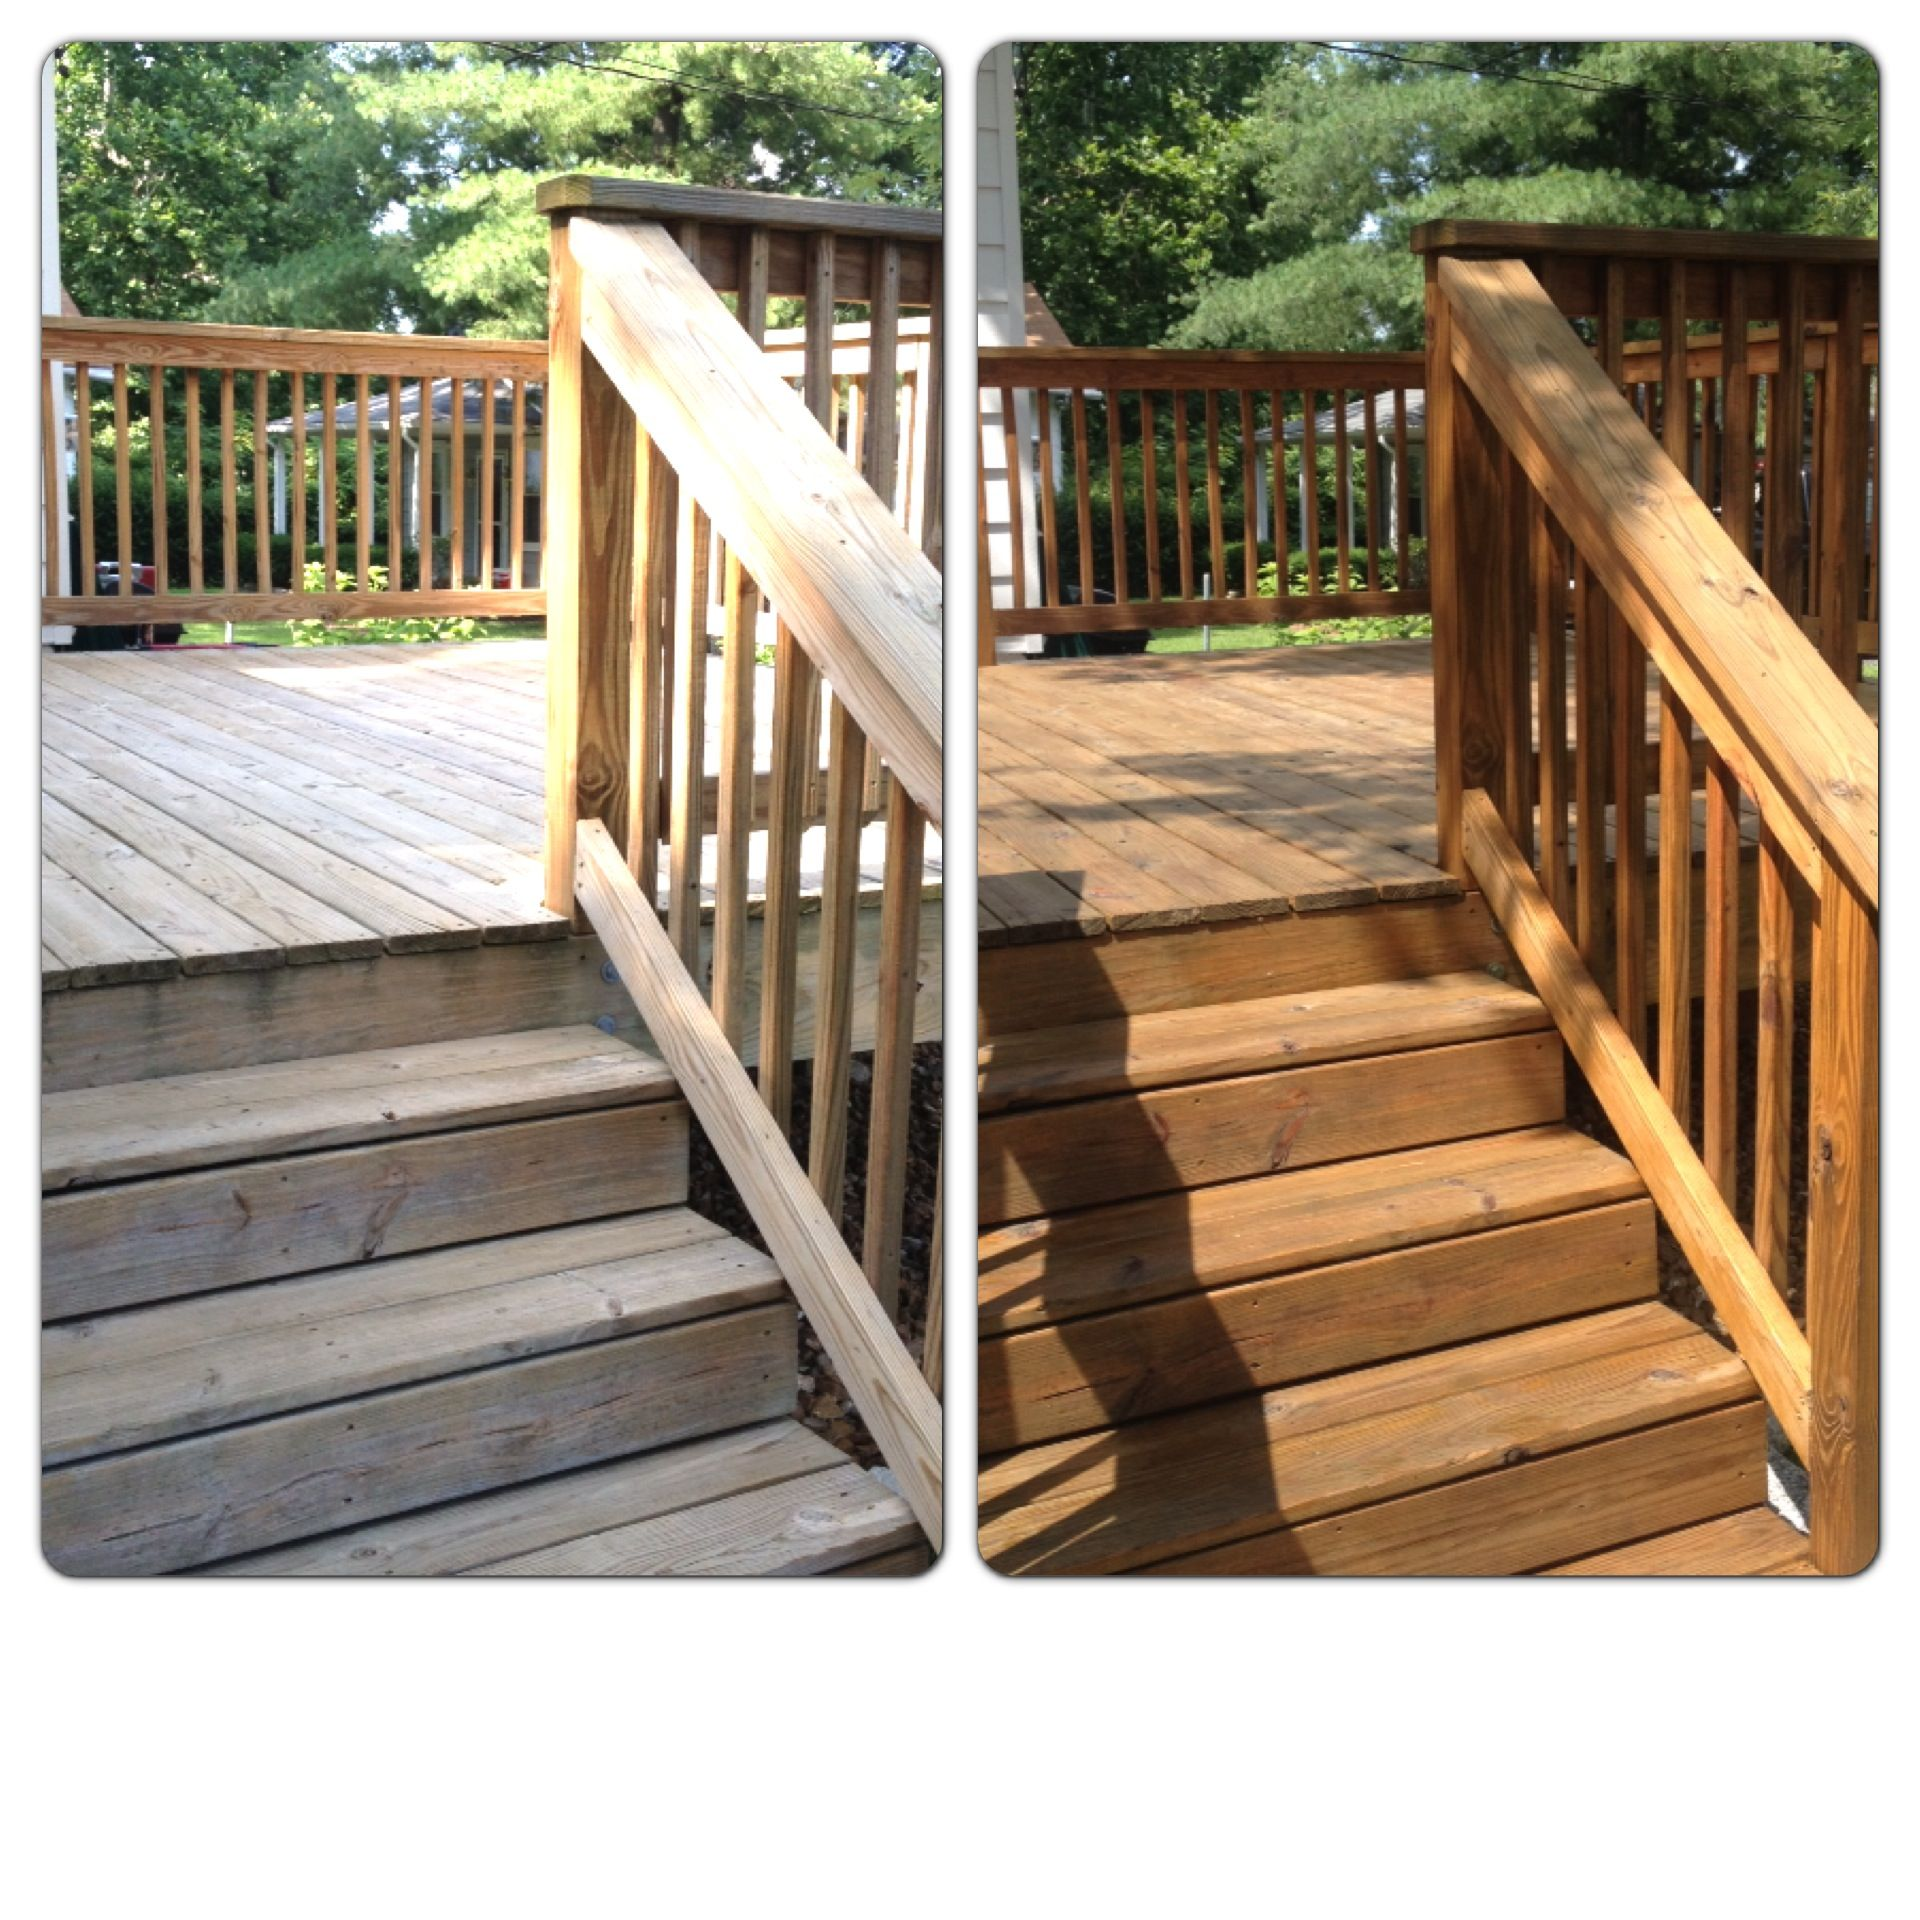 Pin By Jeremy Tripp On Diy Projects Sherwin Williams Deck Stain Cedar Deck Stain Staining Deck